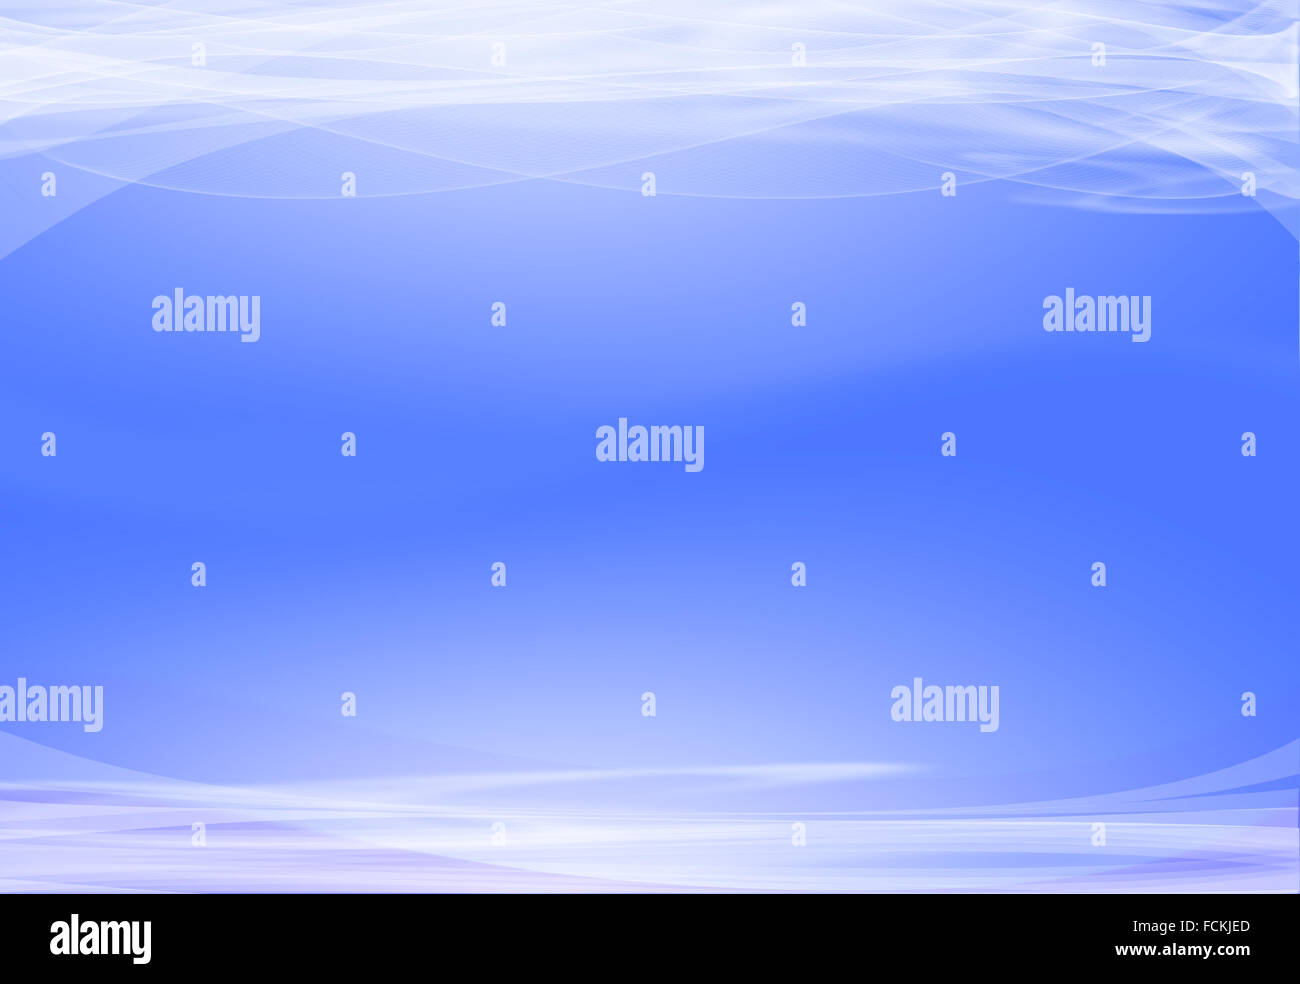 Abstract Blue Background - Stock Image